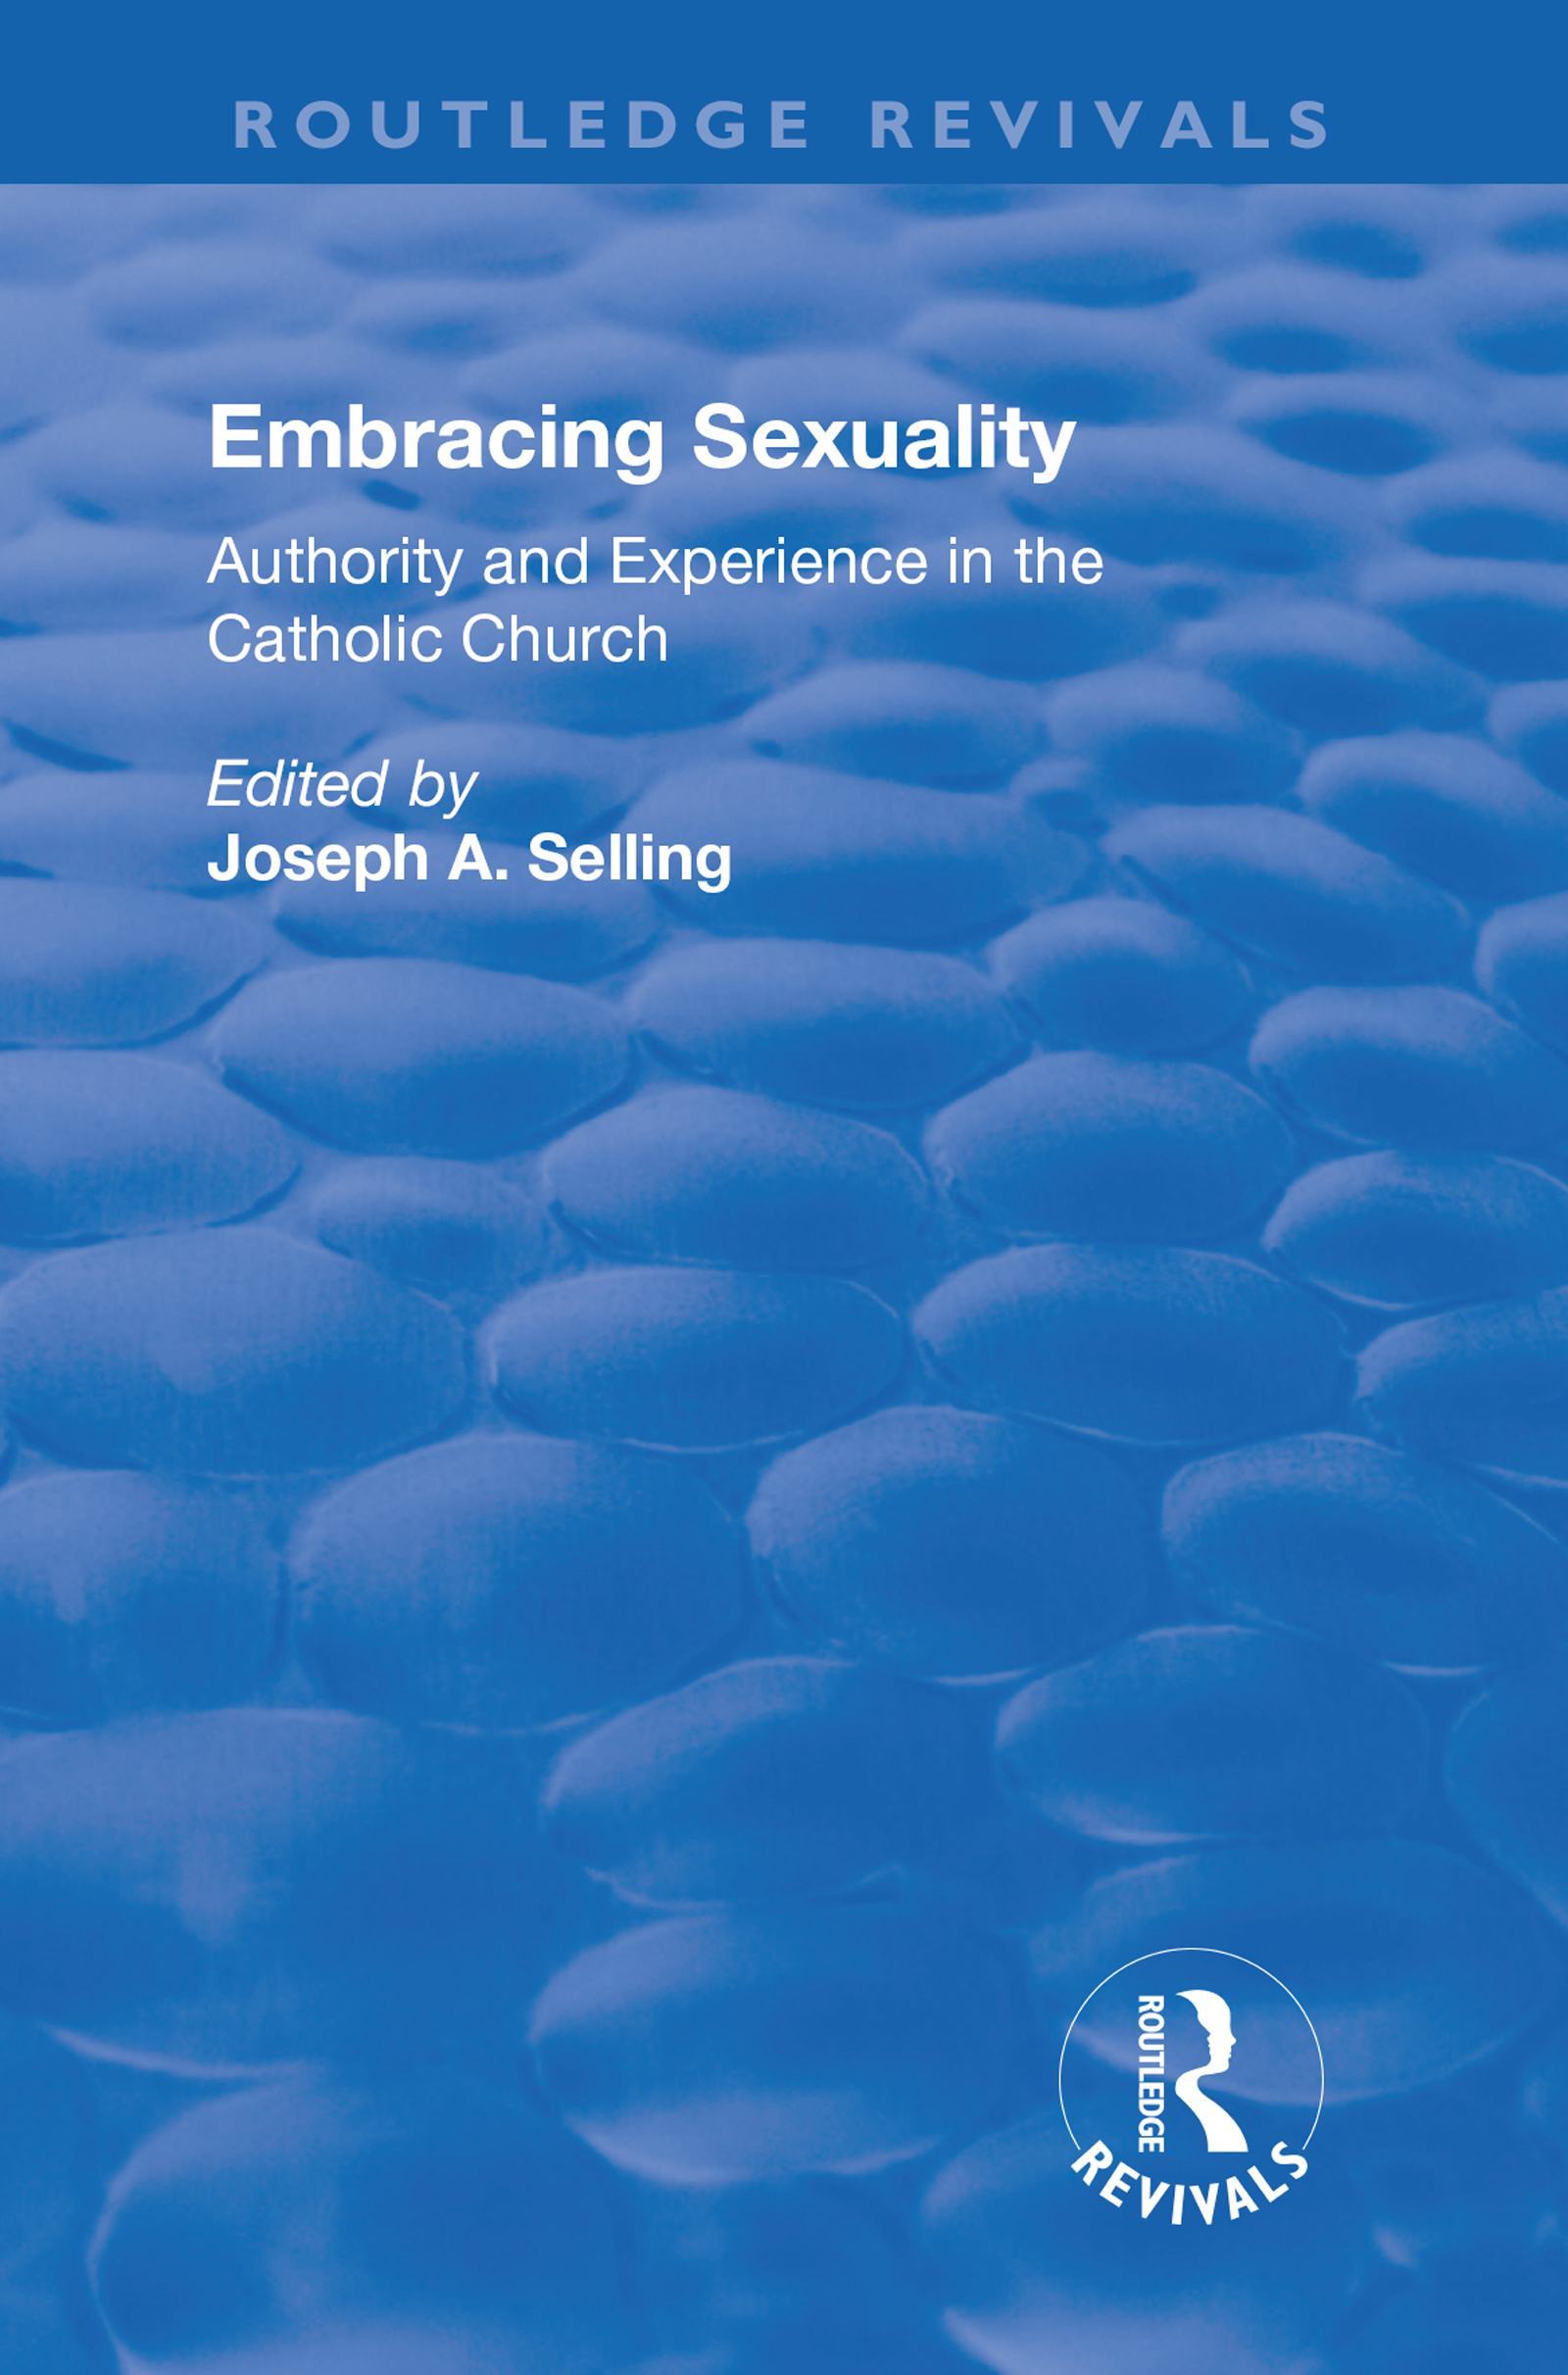 The Catholic Church and Sexuality: The Tensions of Love, Freedom and Law